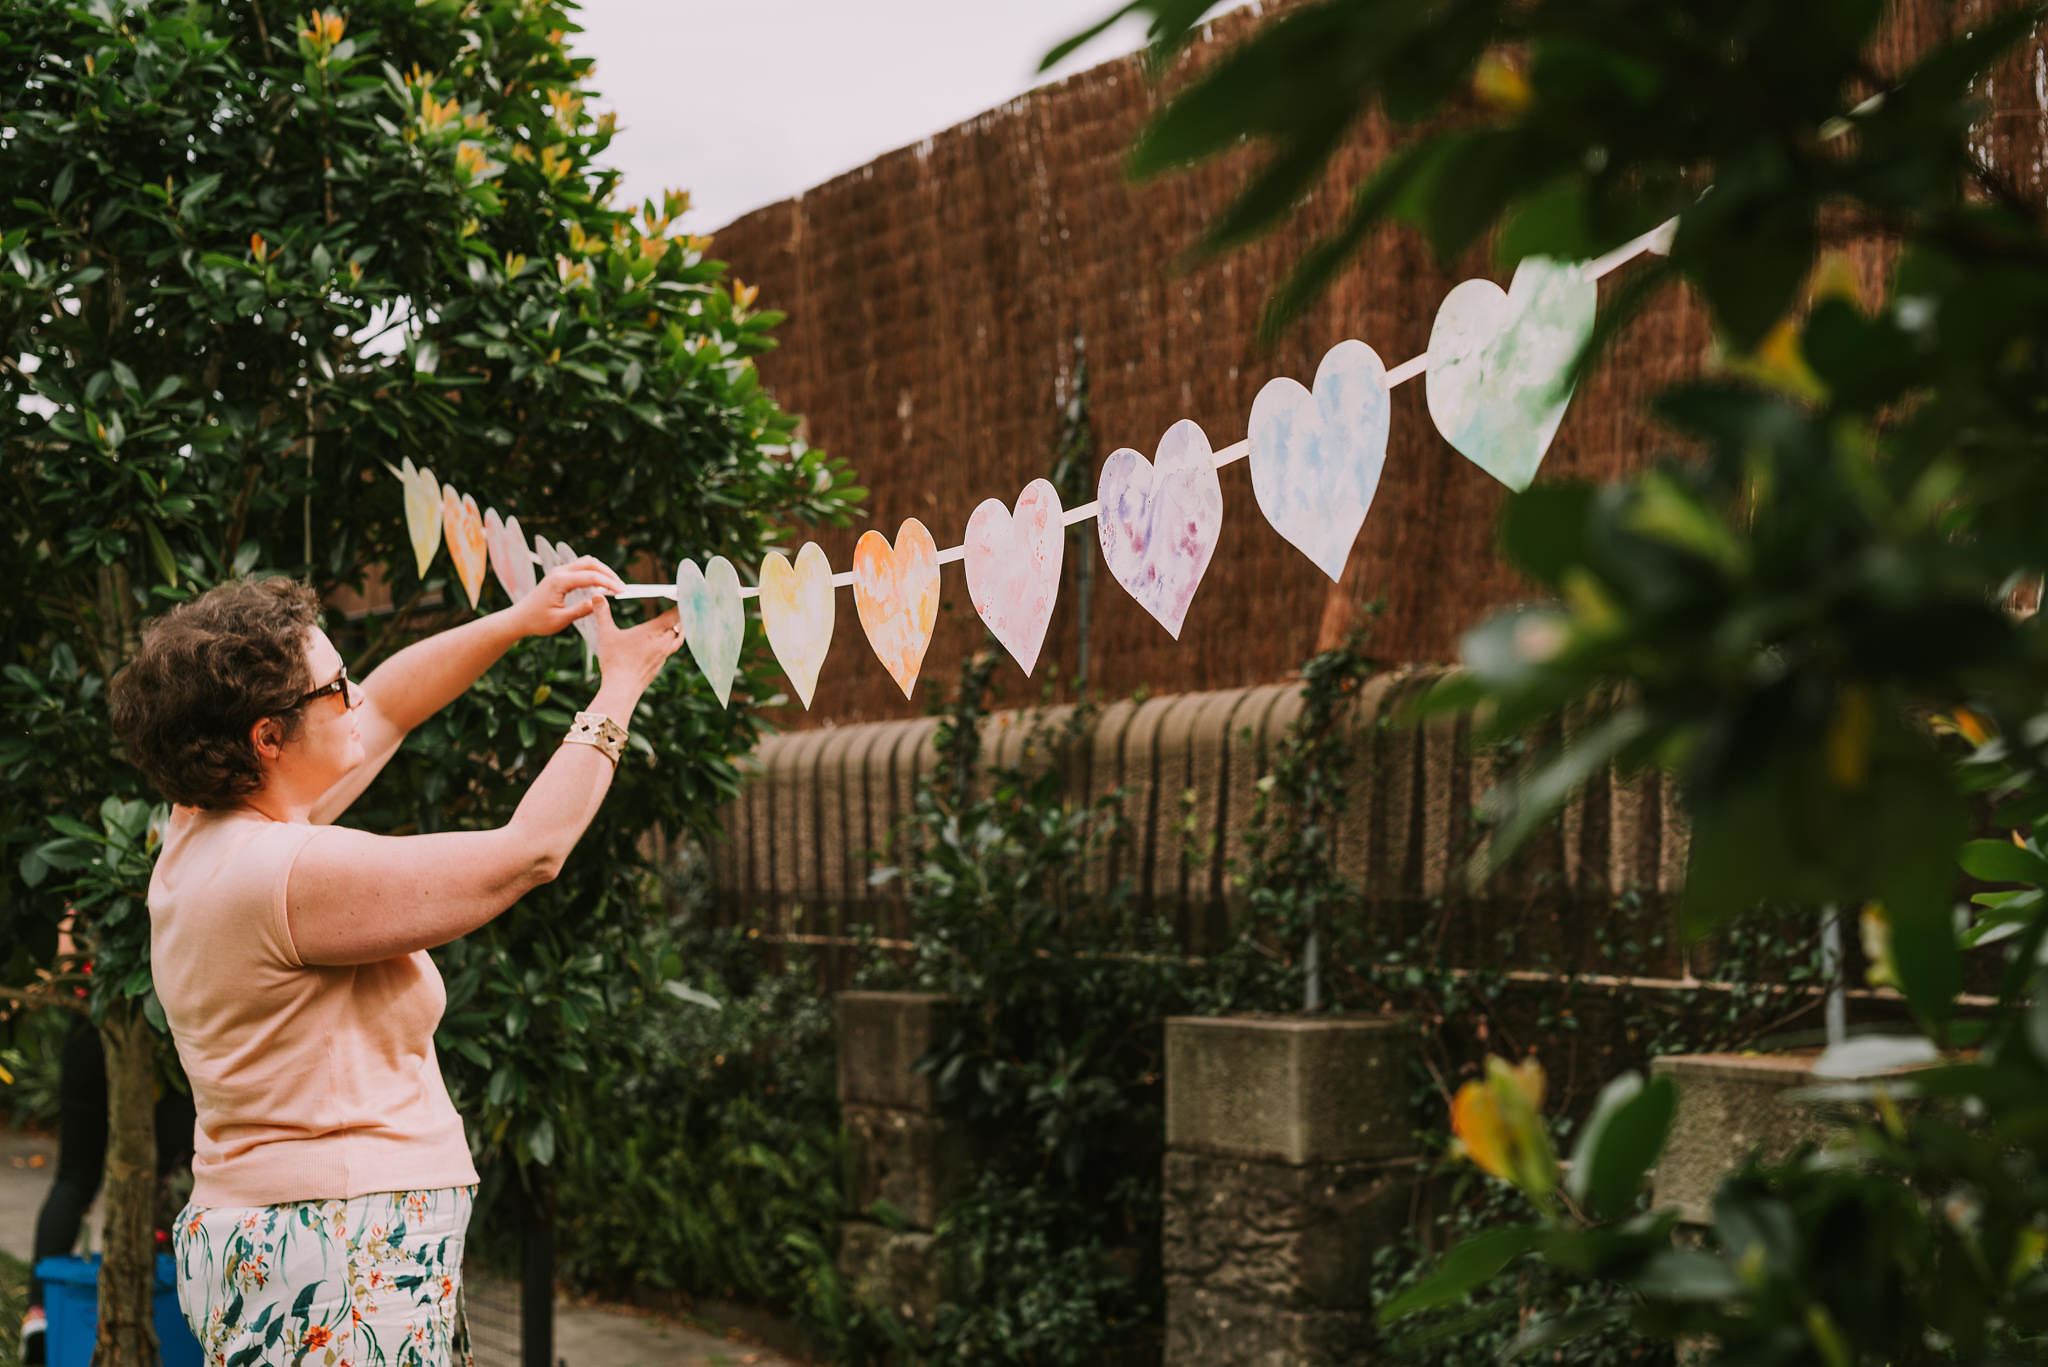 Behind the scenes as I hang strings of watercolour heart bunting to add a splash of colour and love to the garden setting.Photo by Angus Porter Photography